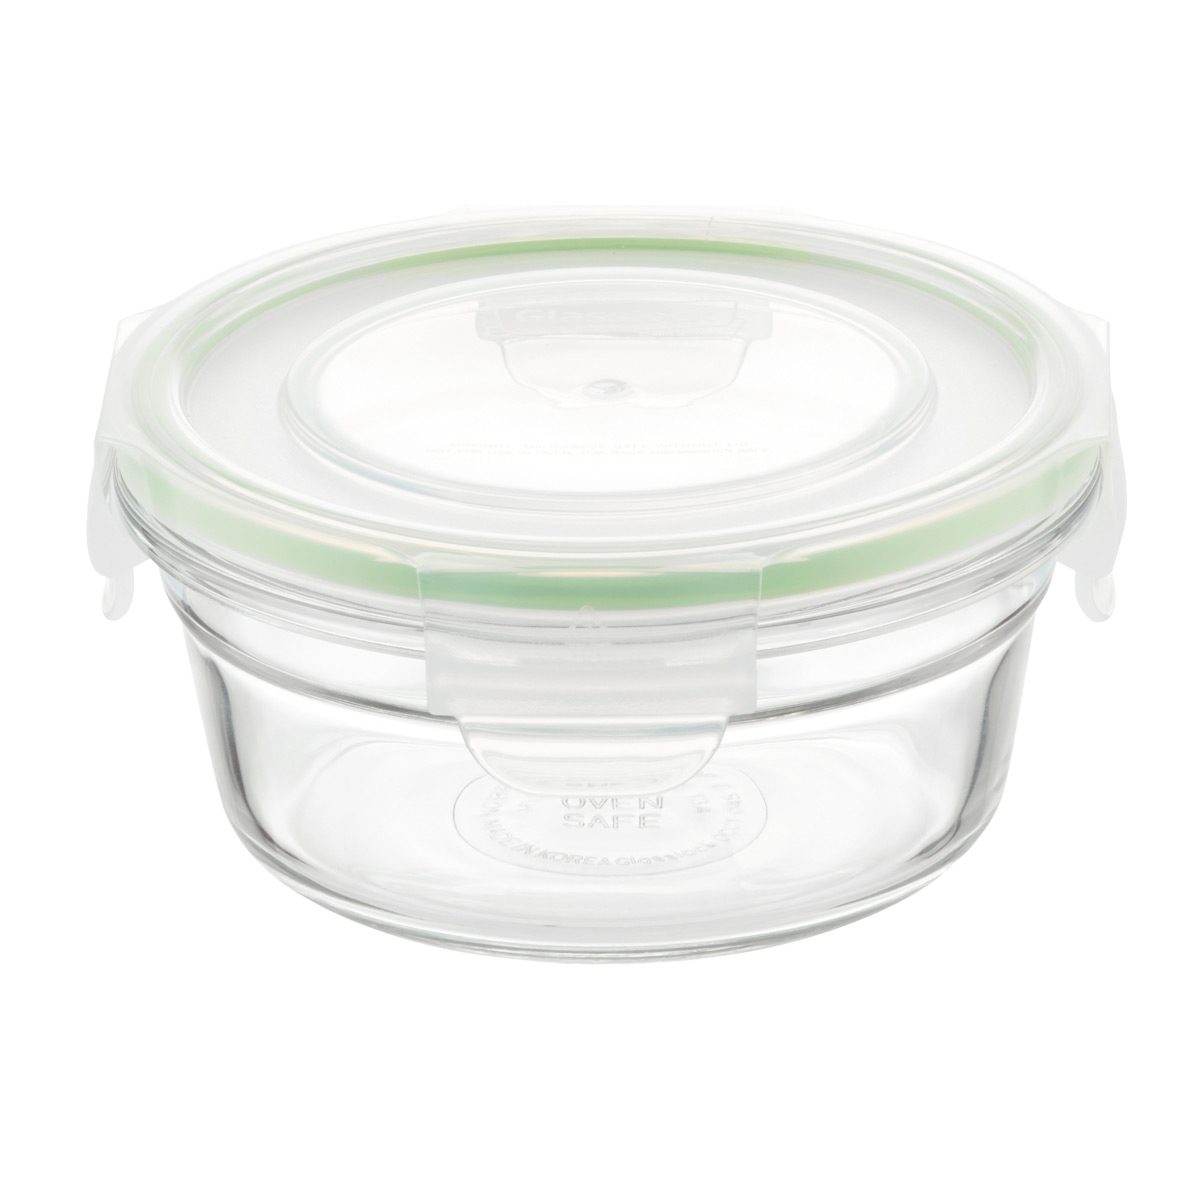 glasslock round food containers with lids - Glass Containers With Lids